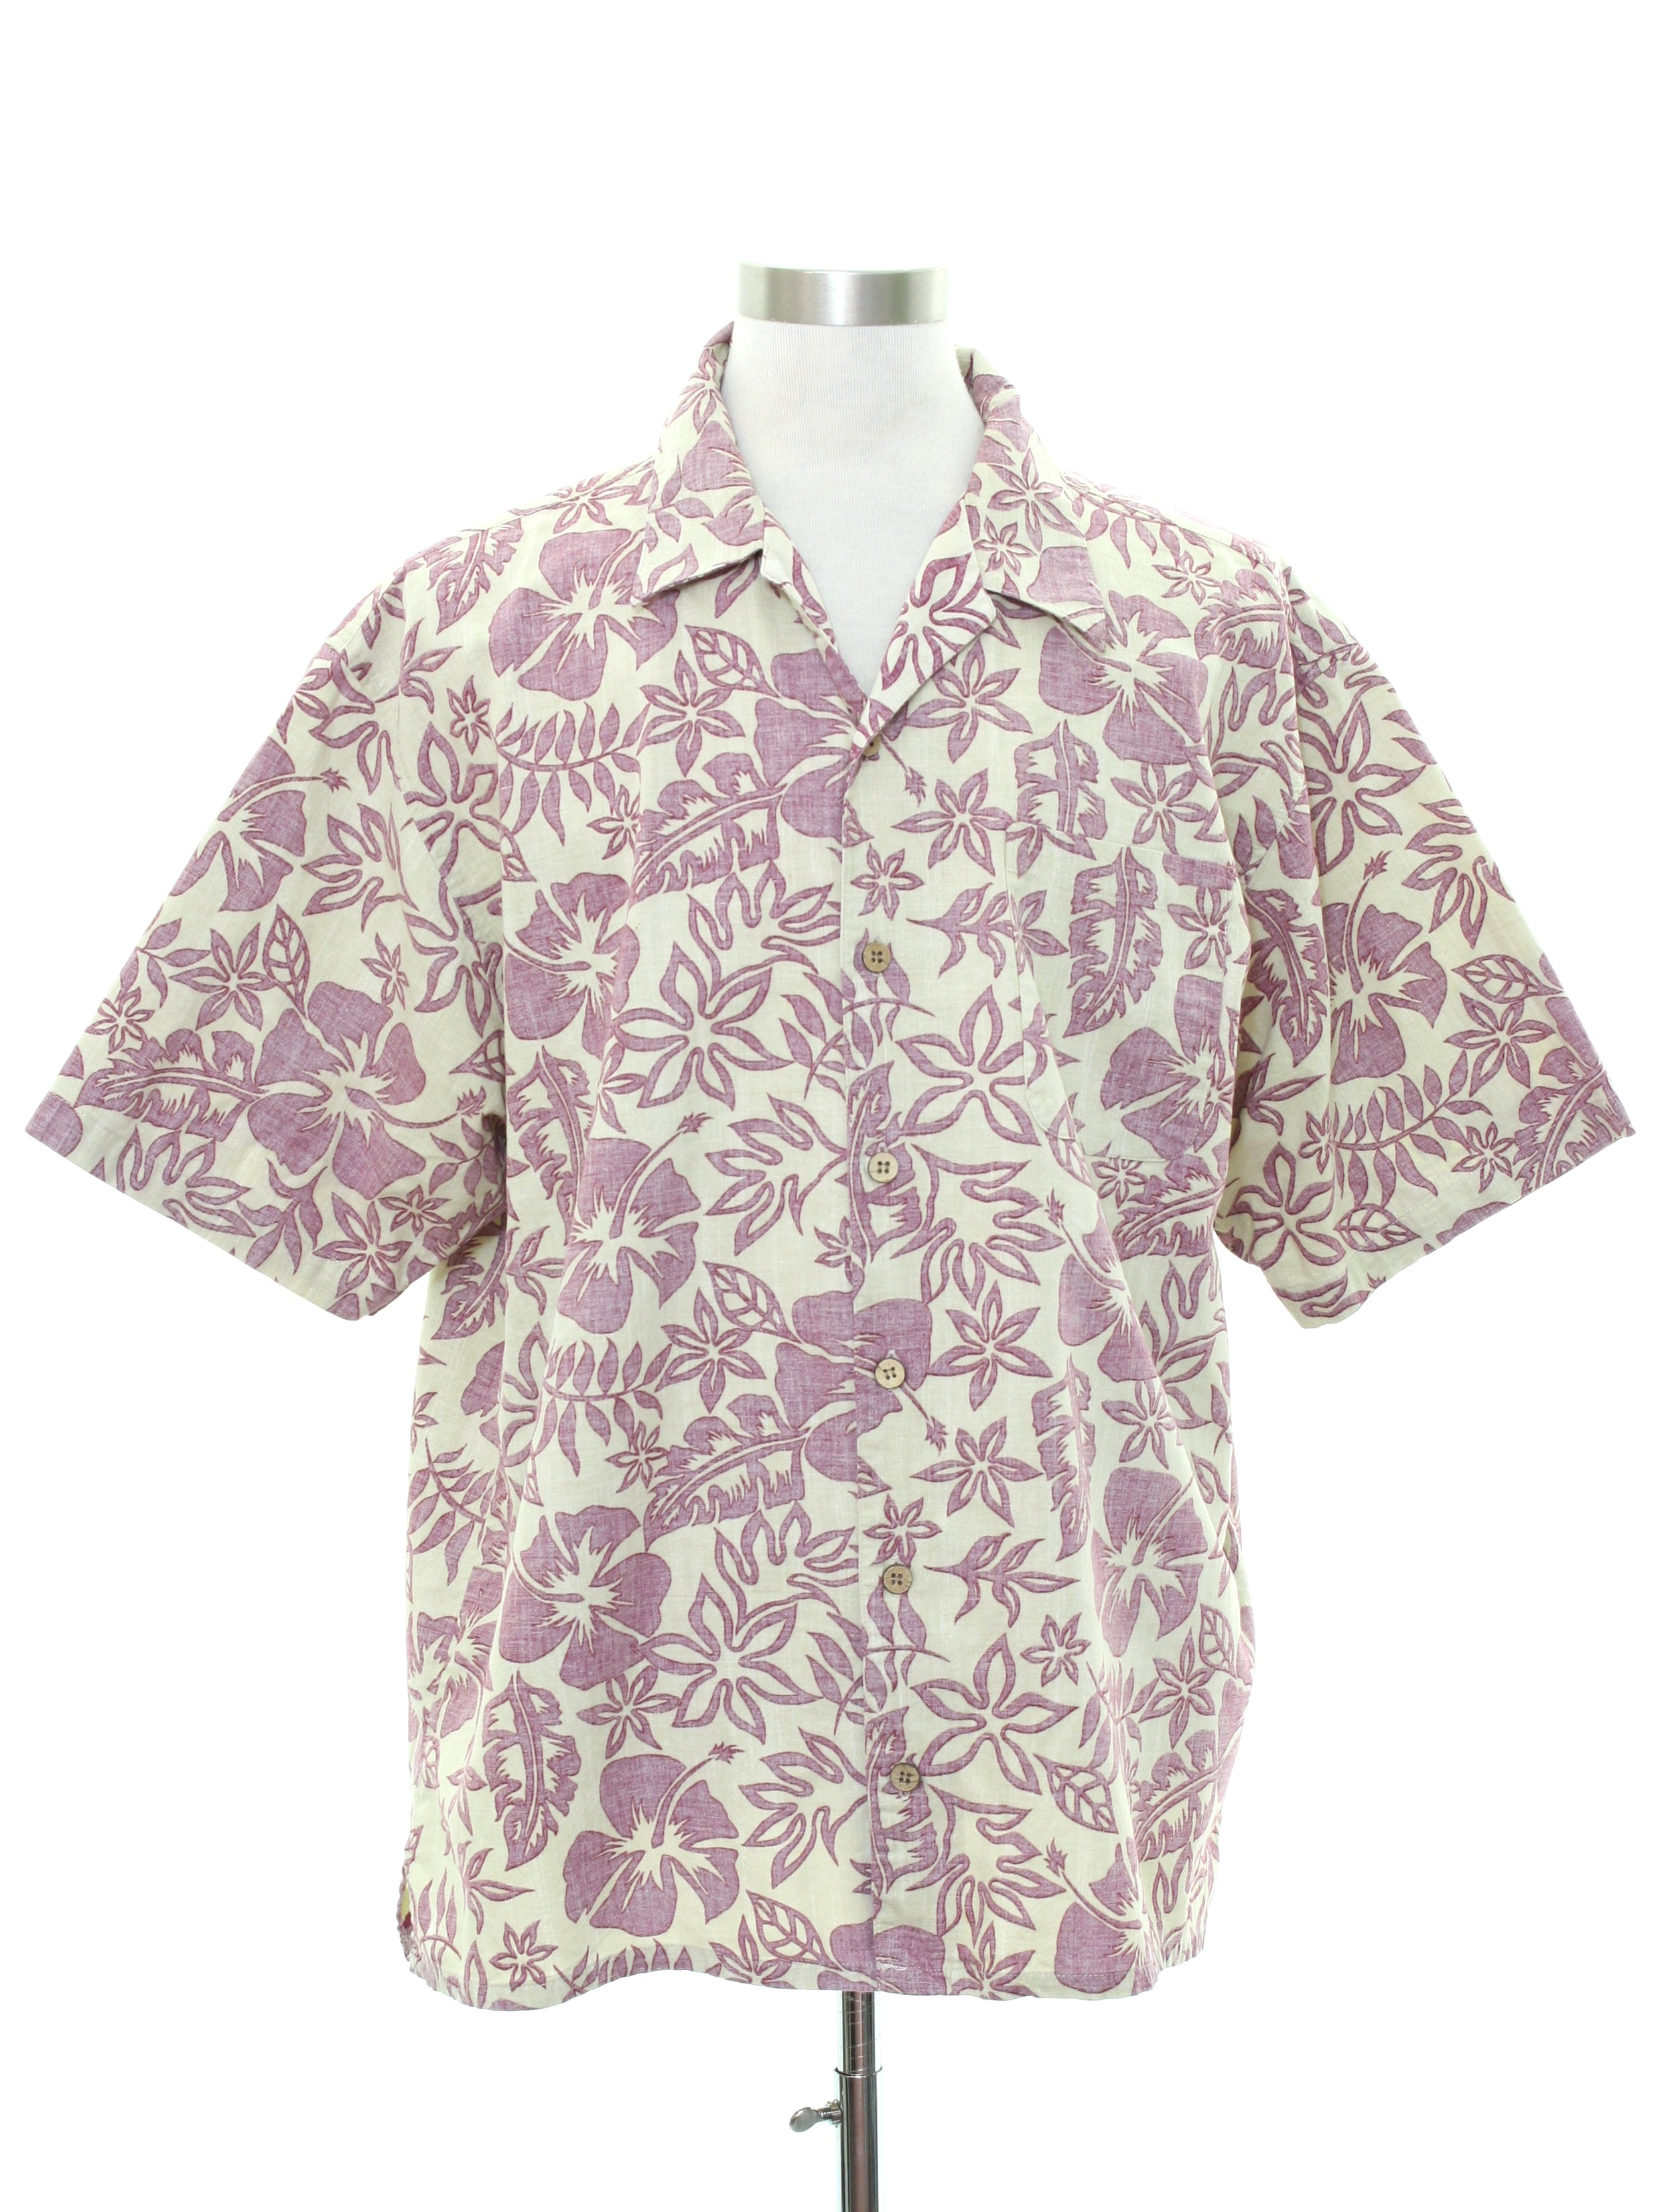 bf290d5b Hawaiian Shirt: -OP- Mens off white and muted pink background cotton ...